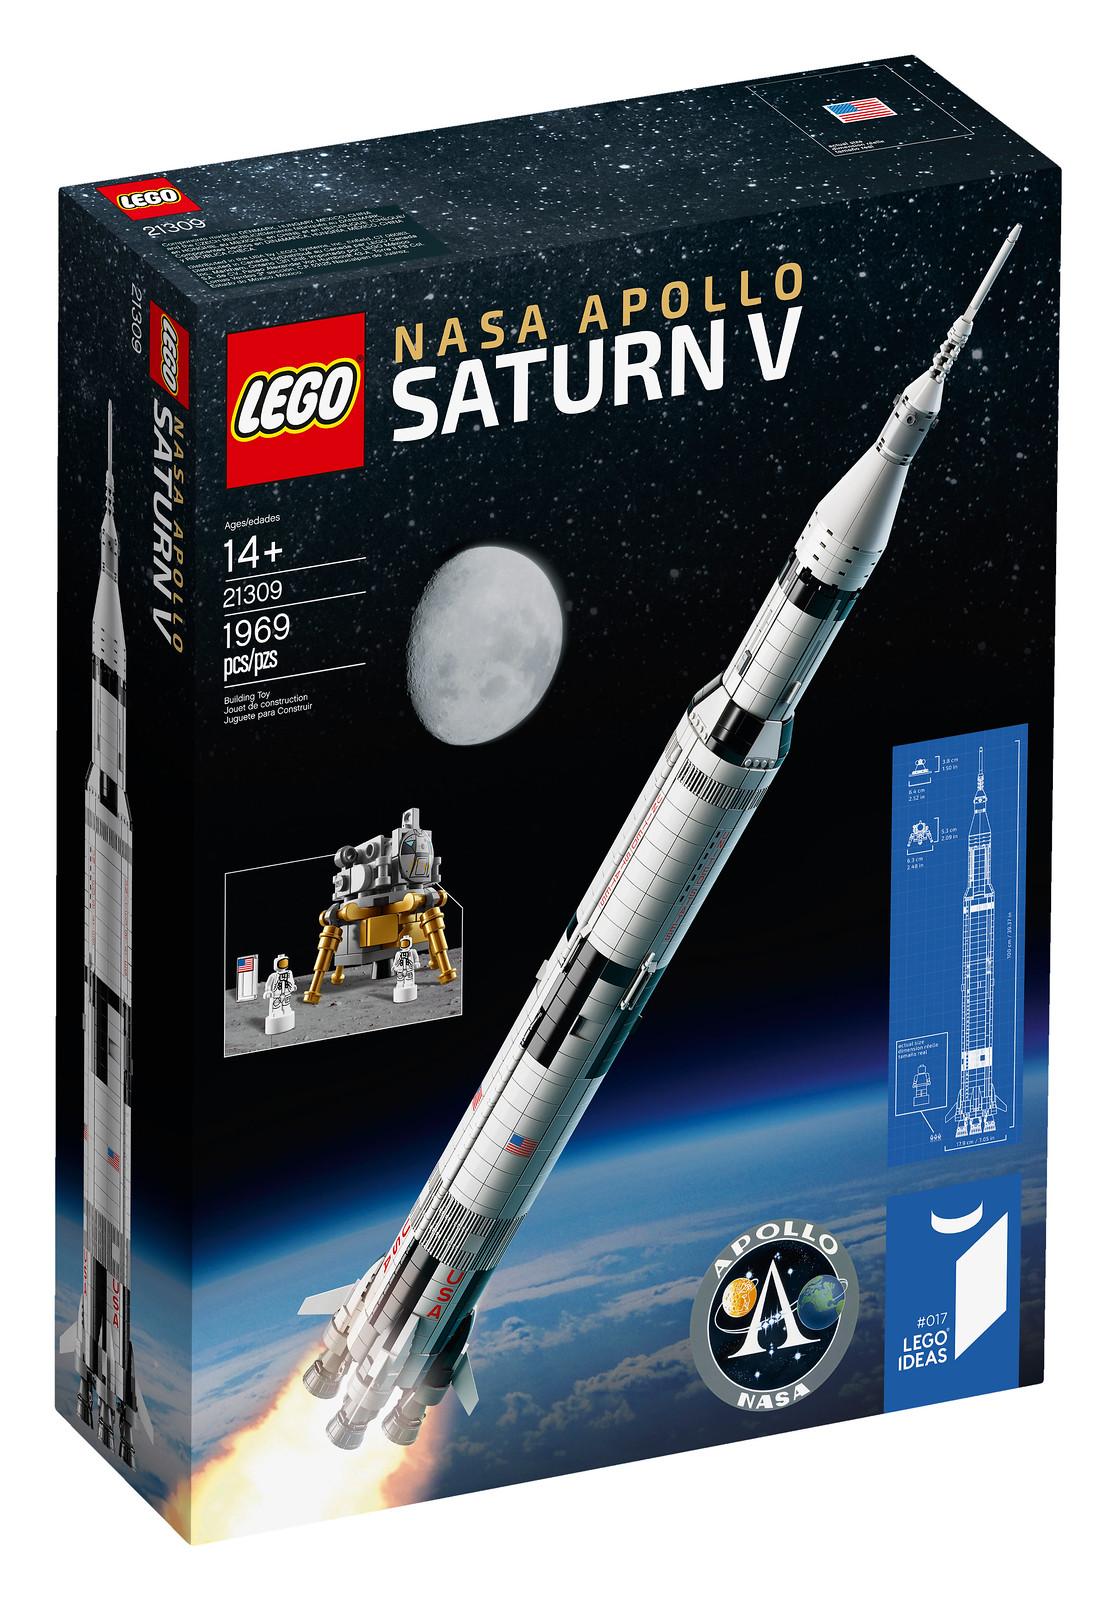 LEGO Ideas 21309 - NASA Apollo Saturn V